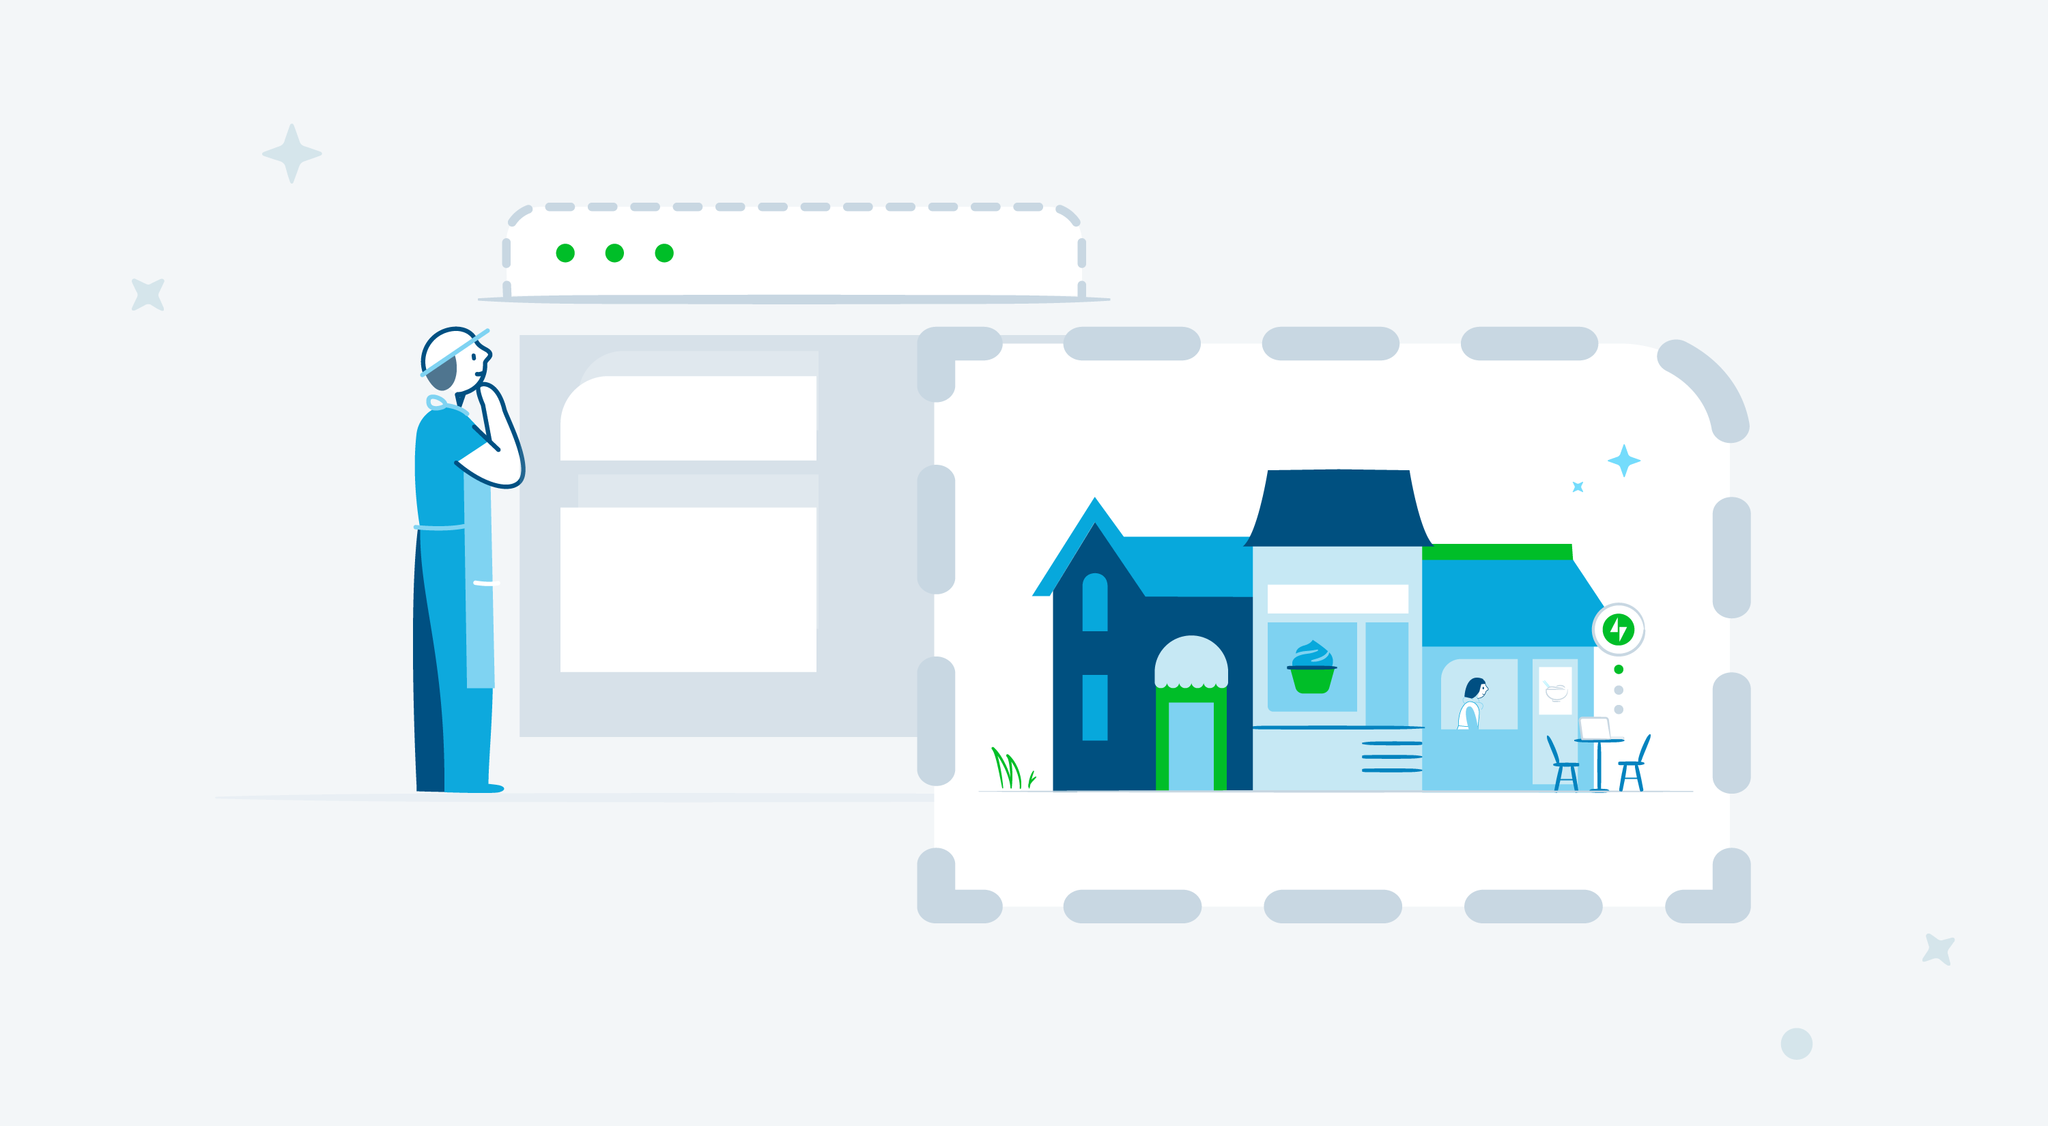 Jetpack 8.7: making it easier to reach your customers